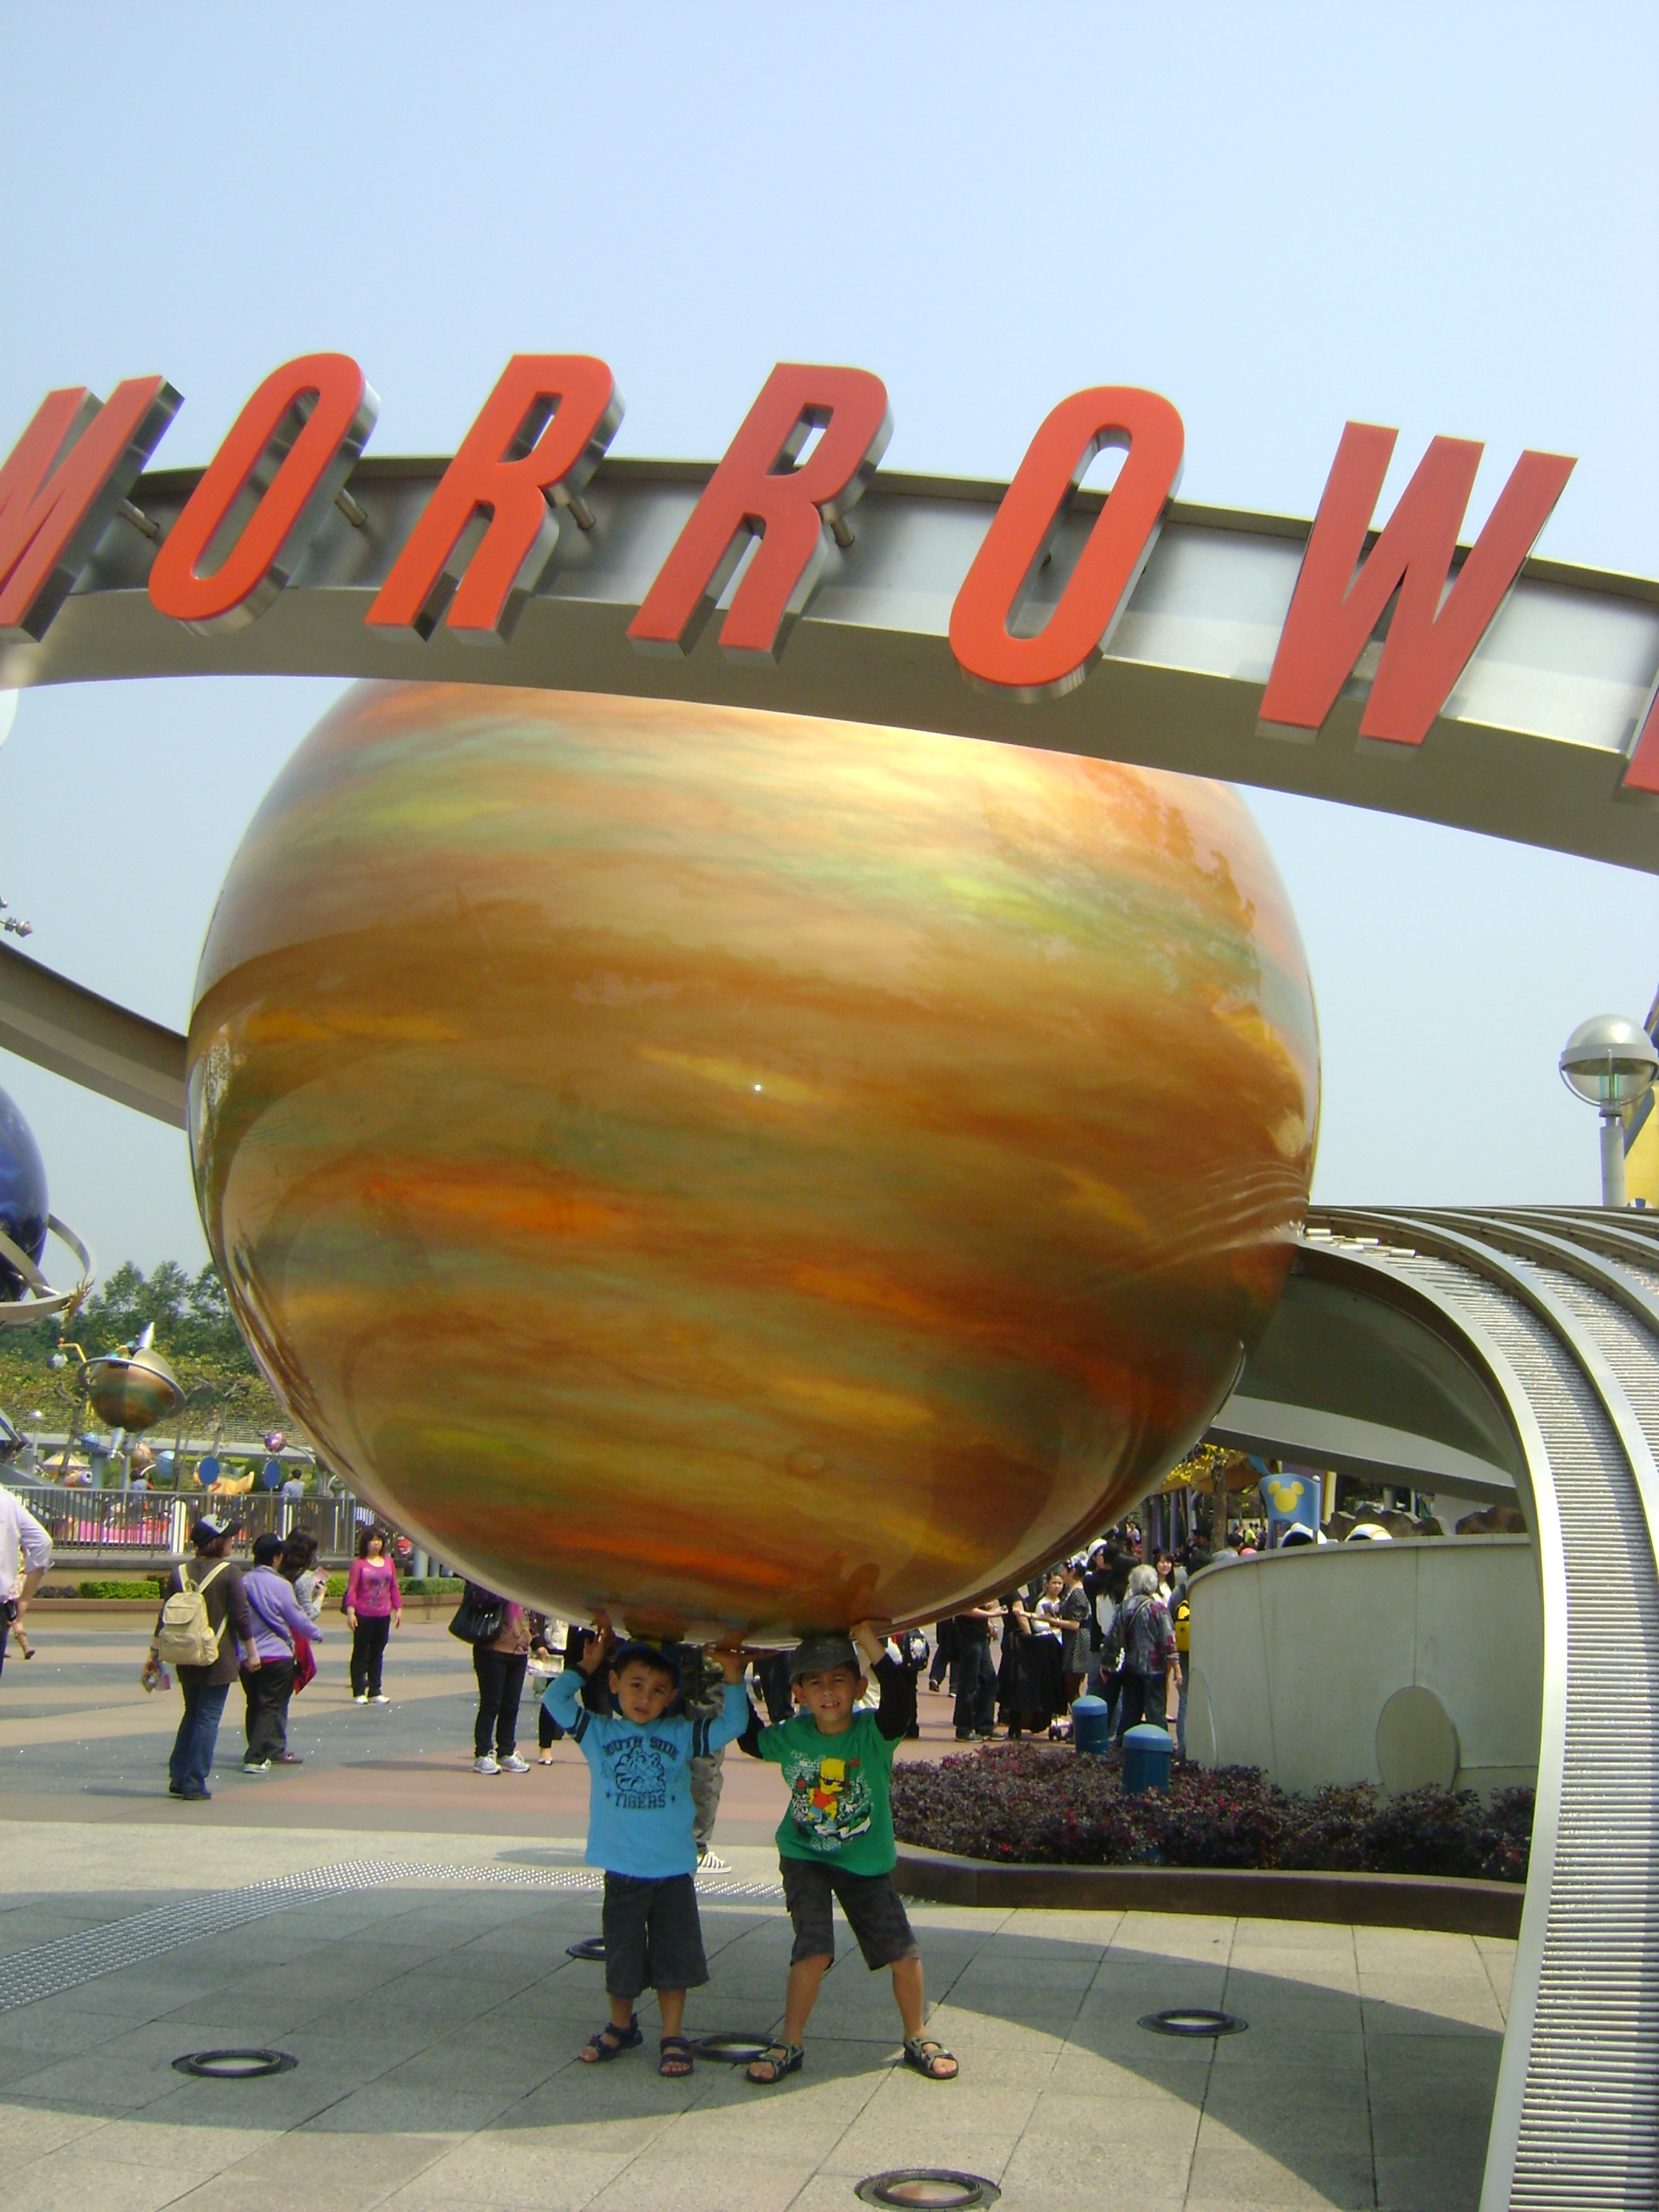 Tomorrowland in Disneyland